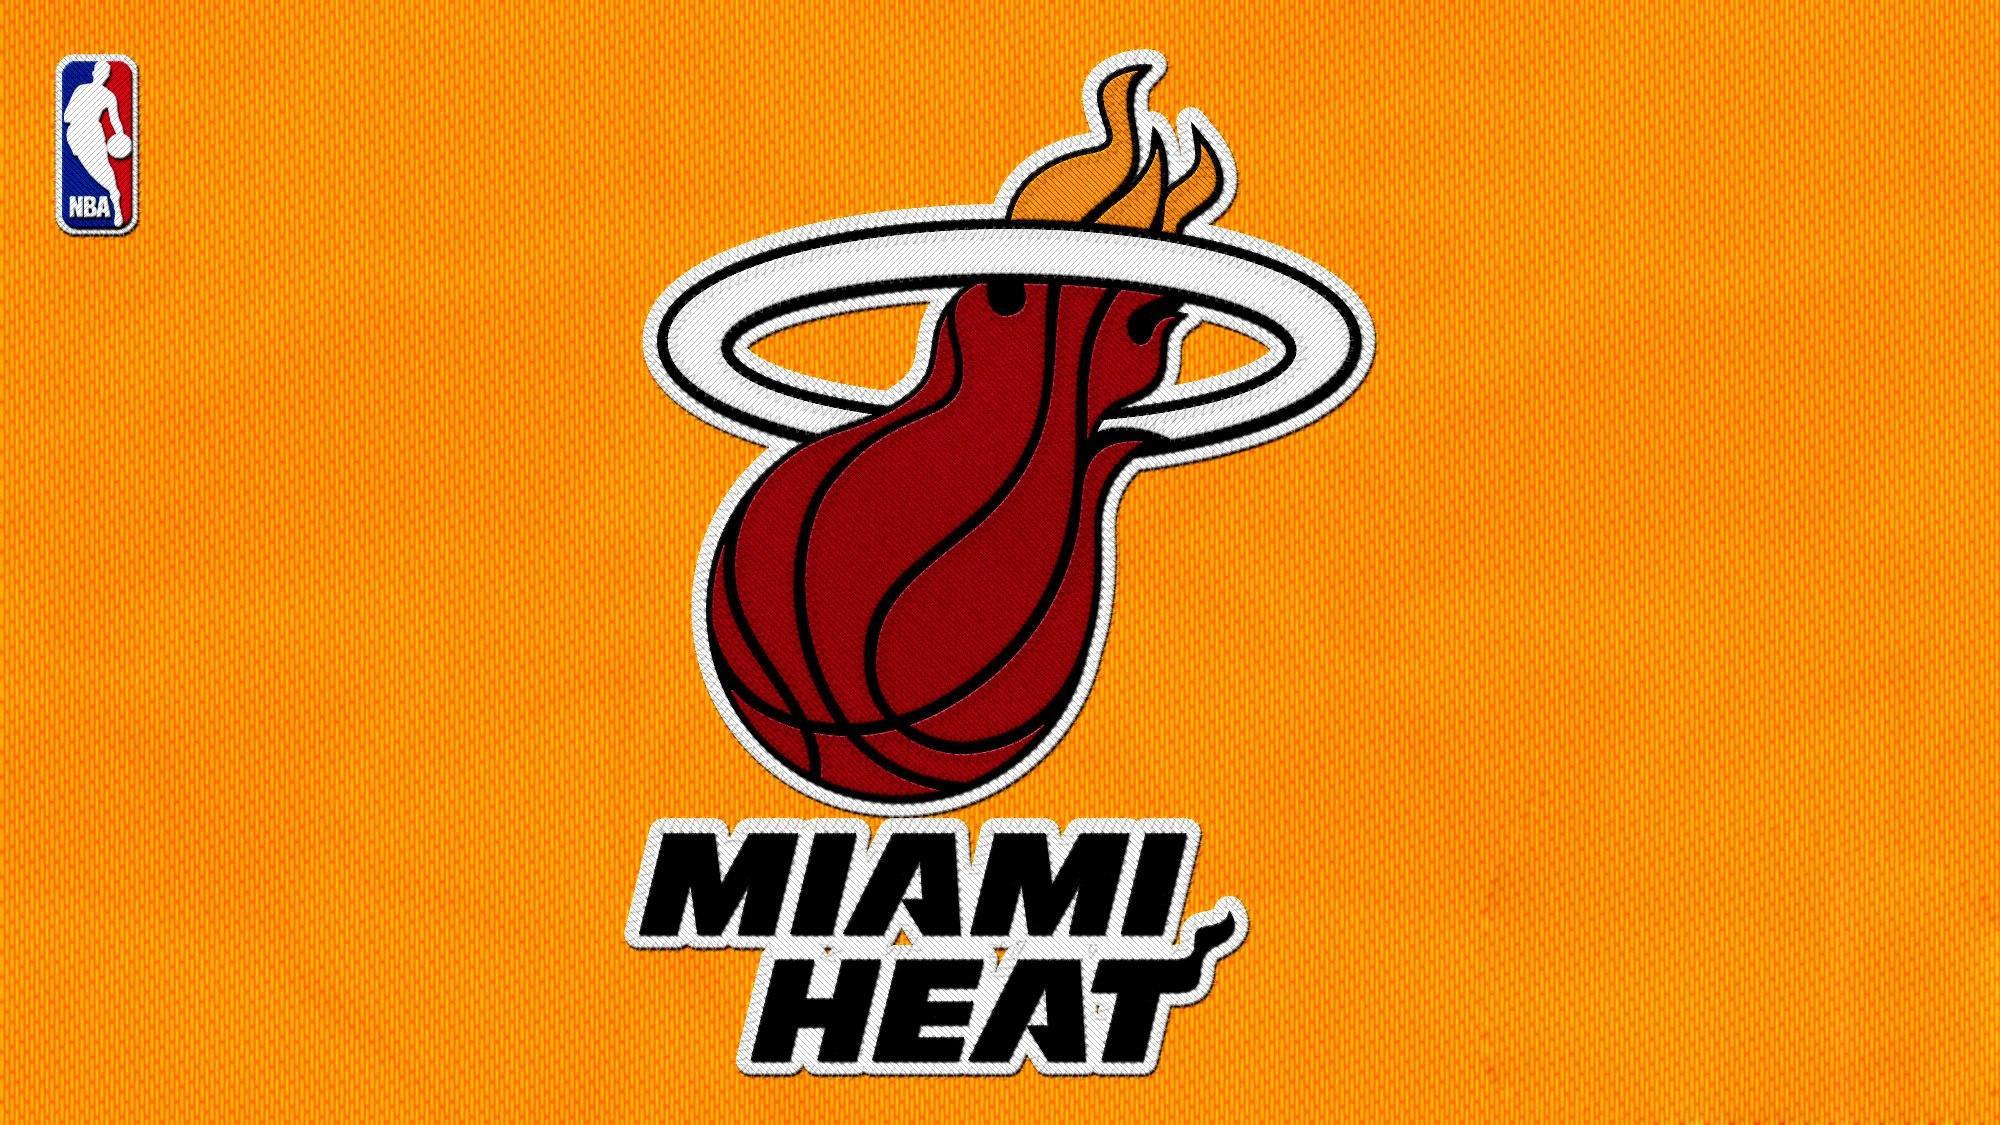 Miami Heat Wallpaper HD Photos HD Background Wallpapers 2000x1125